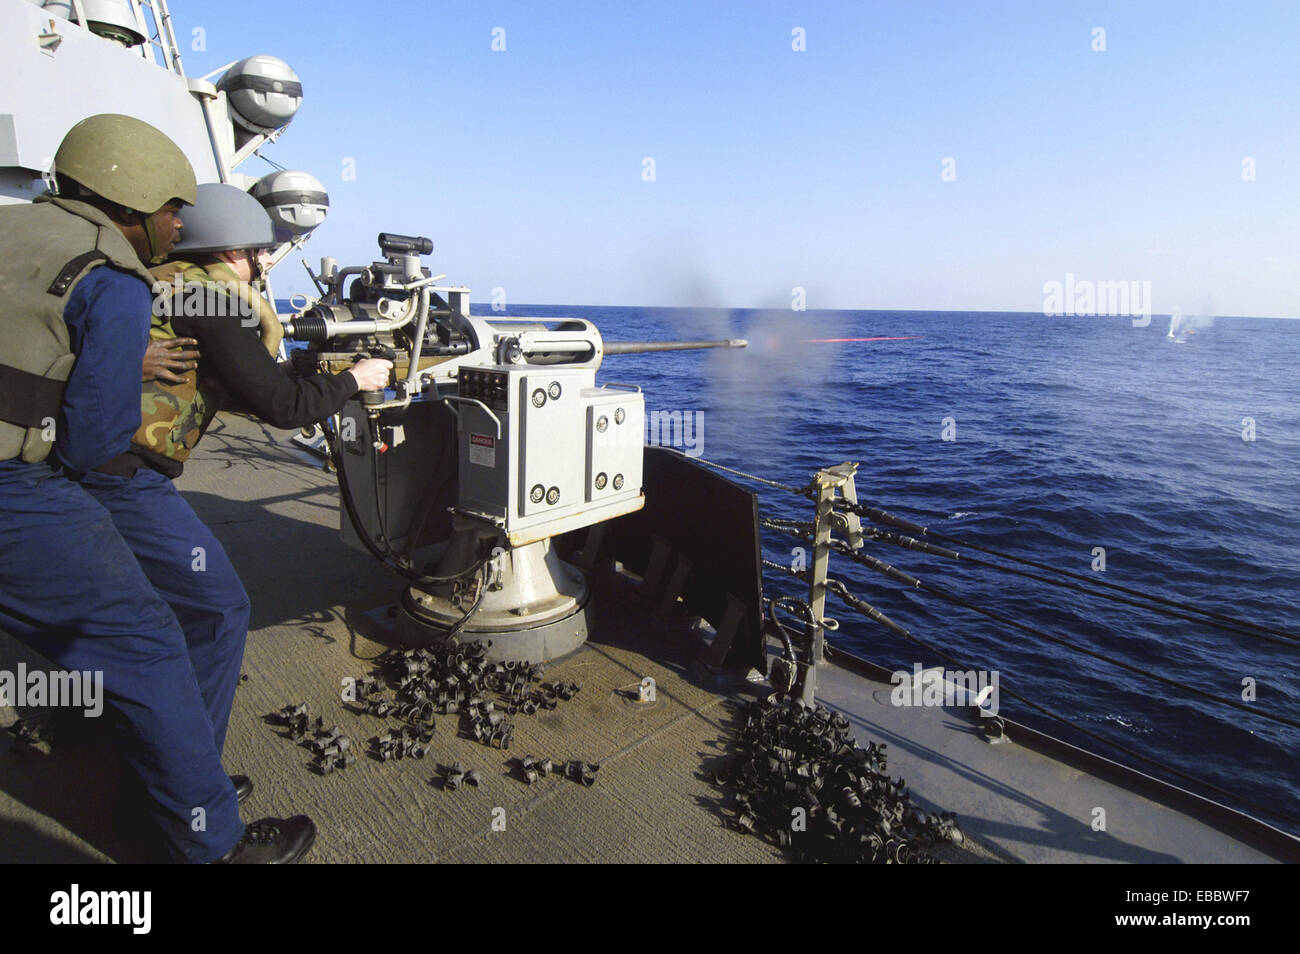 A Sailor fires a MK-38 25mm machine gun at the ´killer tomato´, a floating training target, during a live - Stock Image